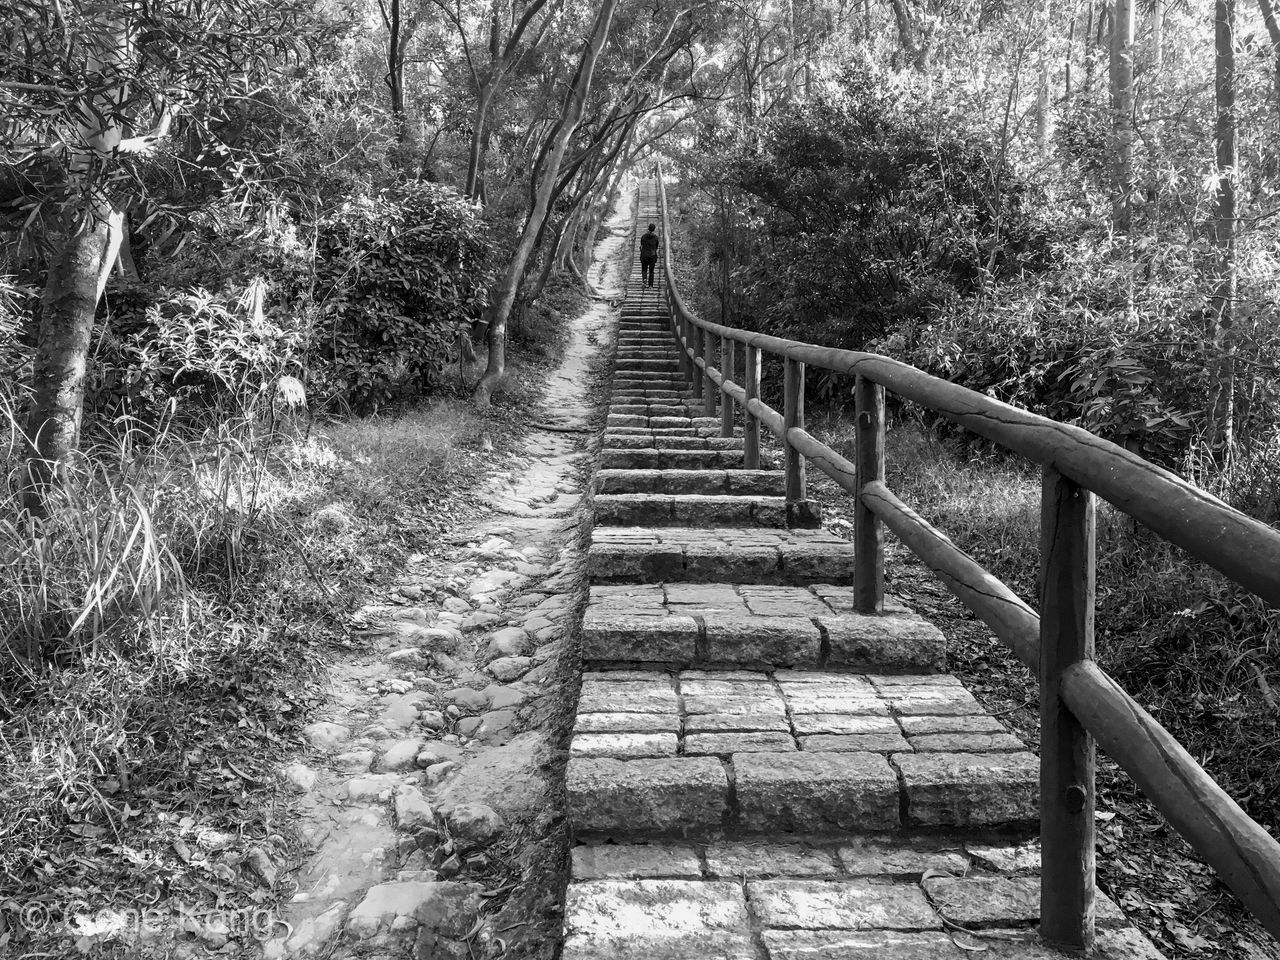 It's a long road Leading Lines Hand Rail Walkway Beauty In Nature Outdoors Day Tranquility Steps Steps And Staircases The Way Forward Railing Nature Nature Photography Natural Beauty Landscape_photography One Person Trail Path In Nature On The Road Blackandwhite Monochrome Depth Of Field Tree Uphill The Week On EyeEm